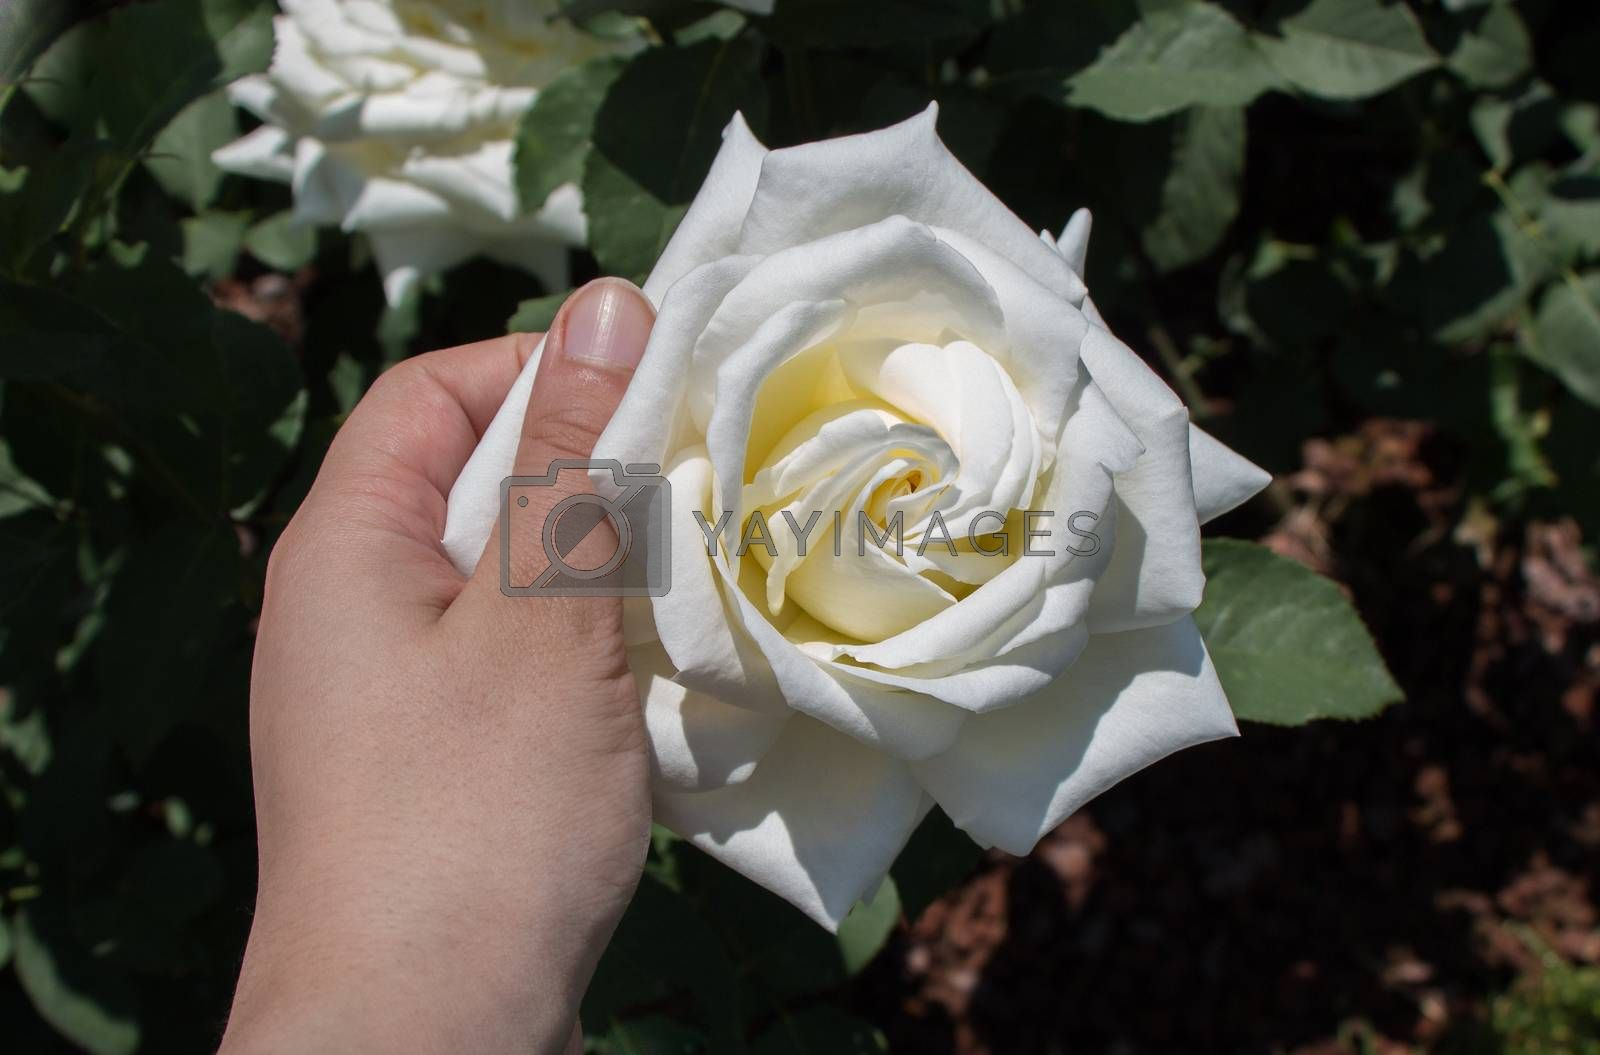 Hand holding a rose in a rose  garden by berkay